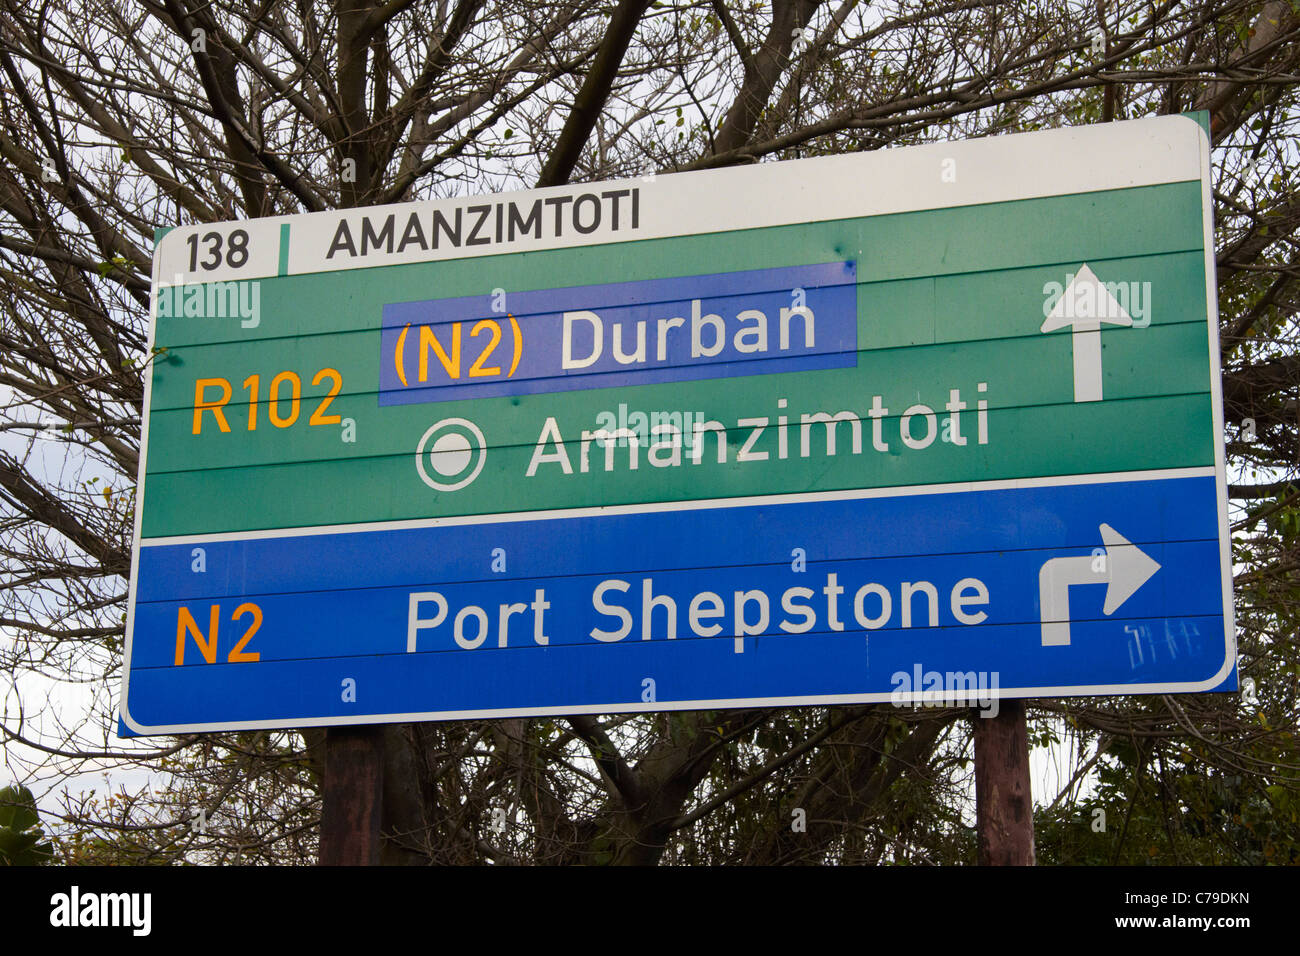 South african road sign stock photos south african road sign road sign to durban and port shepstone at amanzimtoti kwazulu natal south africa biocorpaavc Choice Image